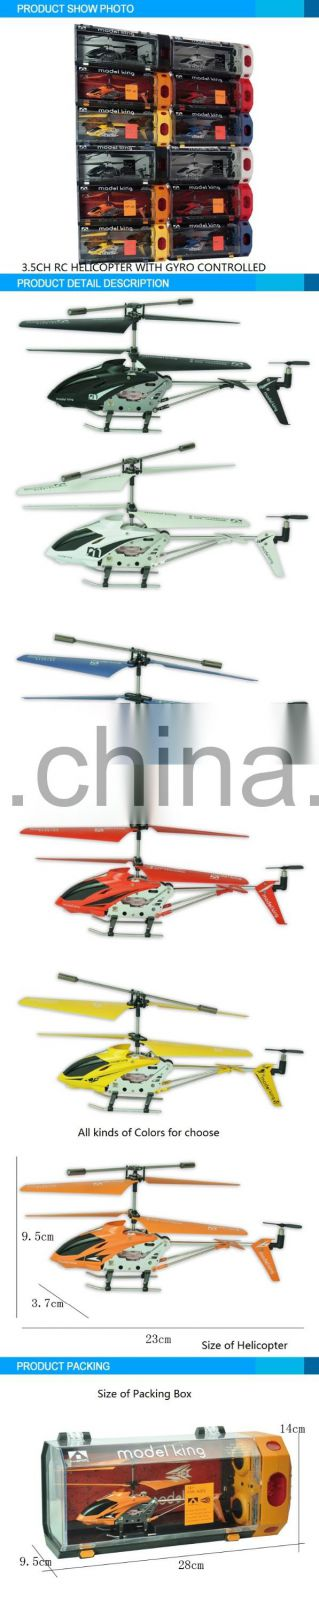 2016 Newest Series 3.5 CH RC Helicopter with Gyro controlled